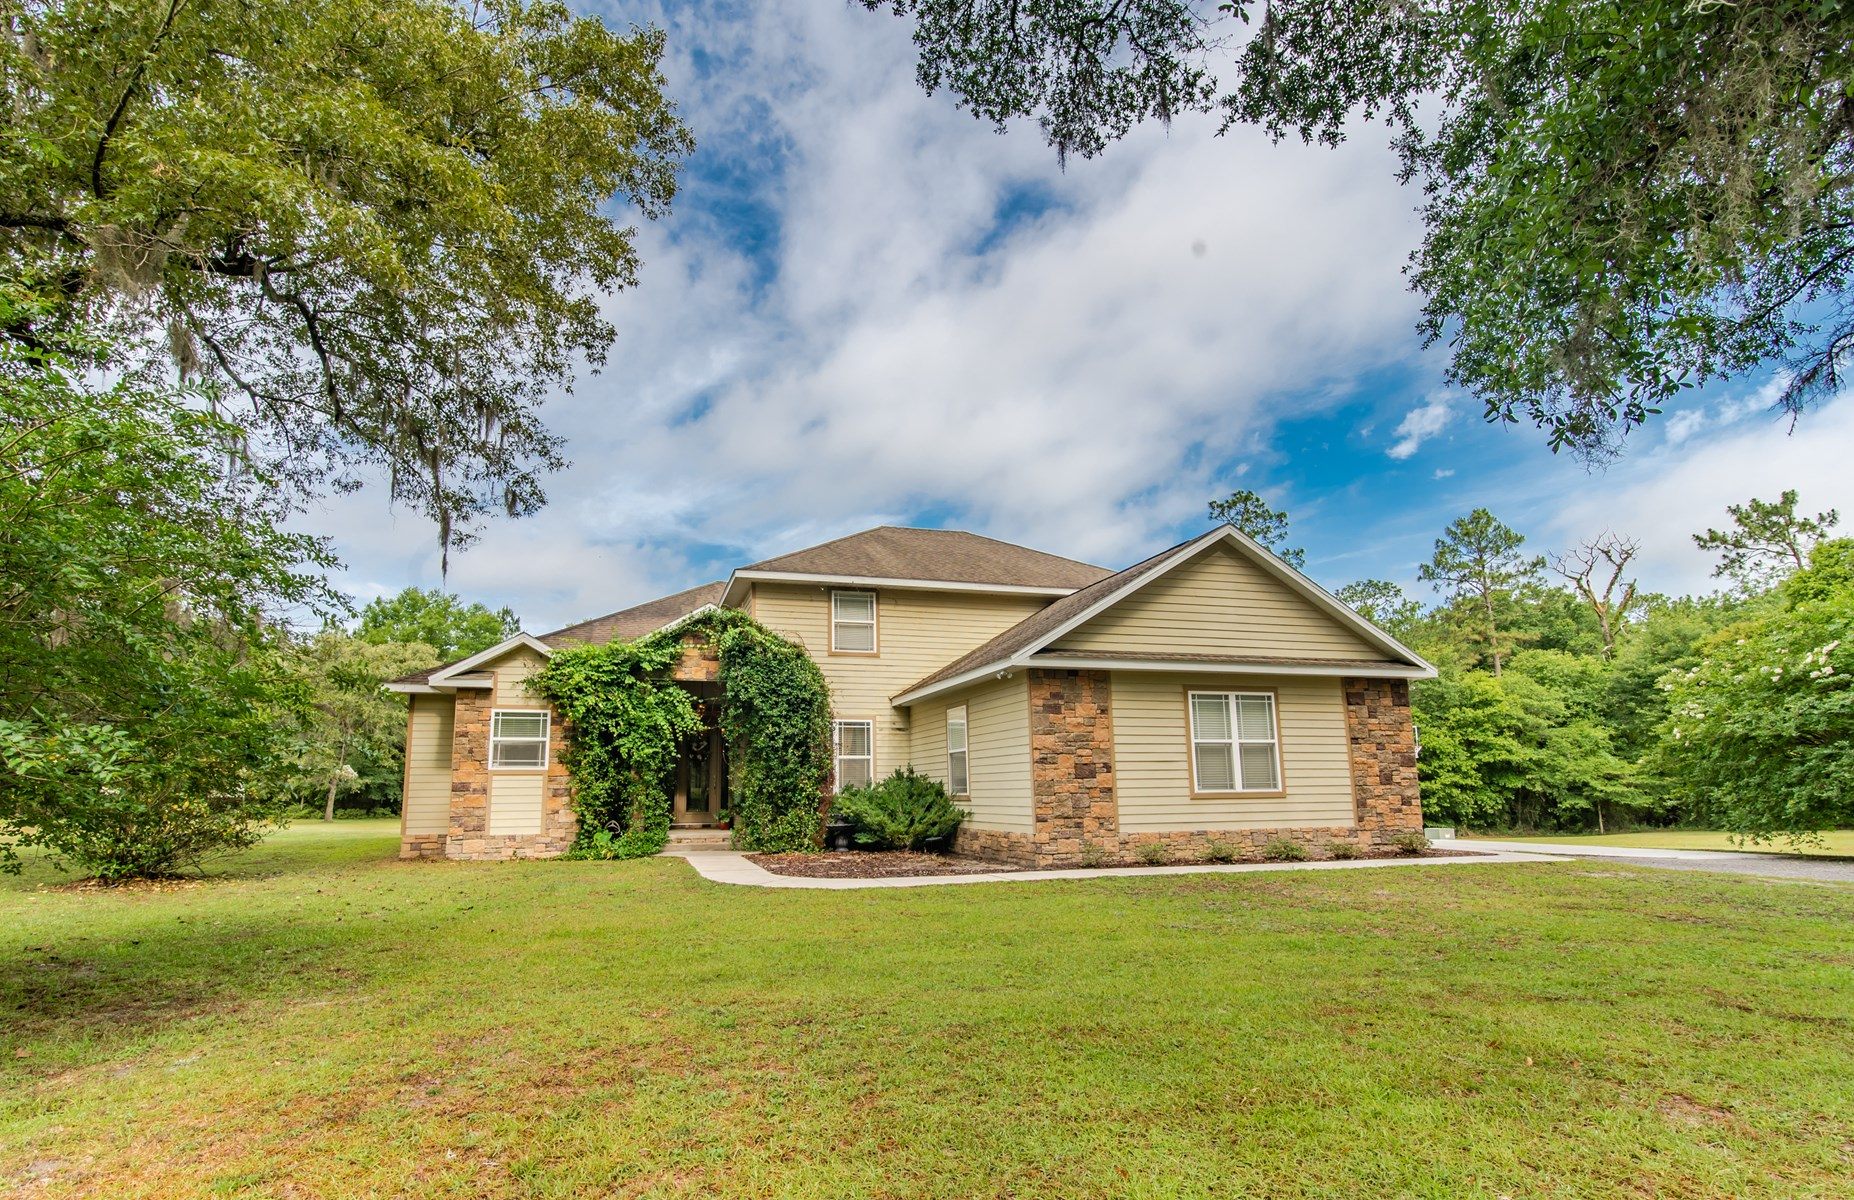 SPACIOUS 5 BR/ 4 BA HOME ON 8.23 ACRES IN LAKE CITY, FL